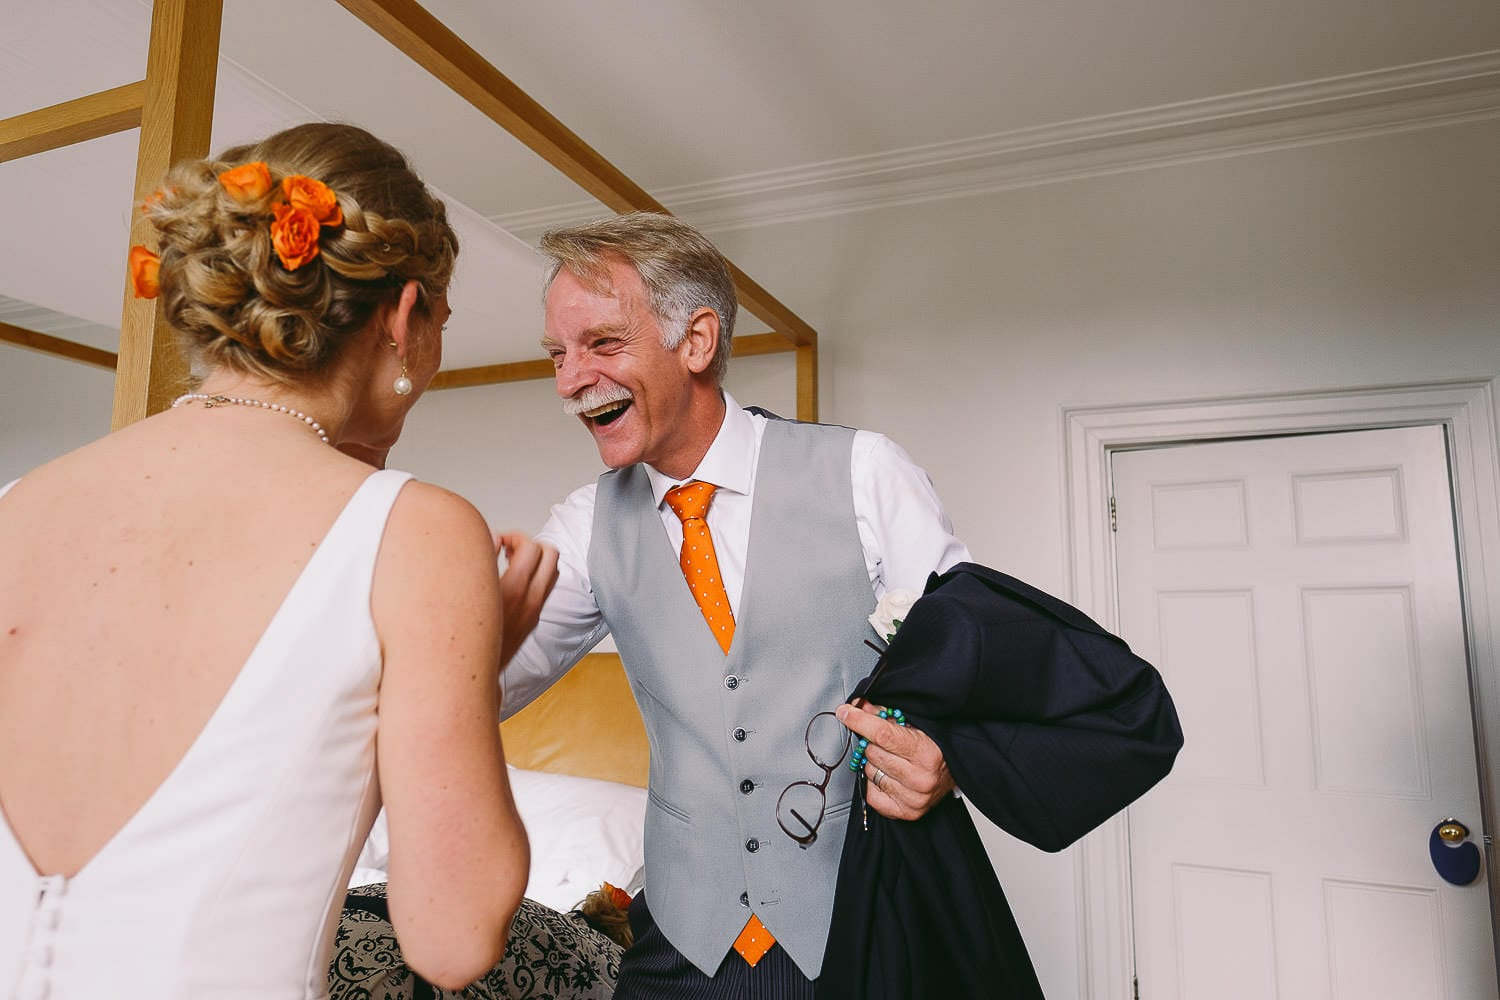 Father of the bride sees her for the first time